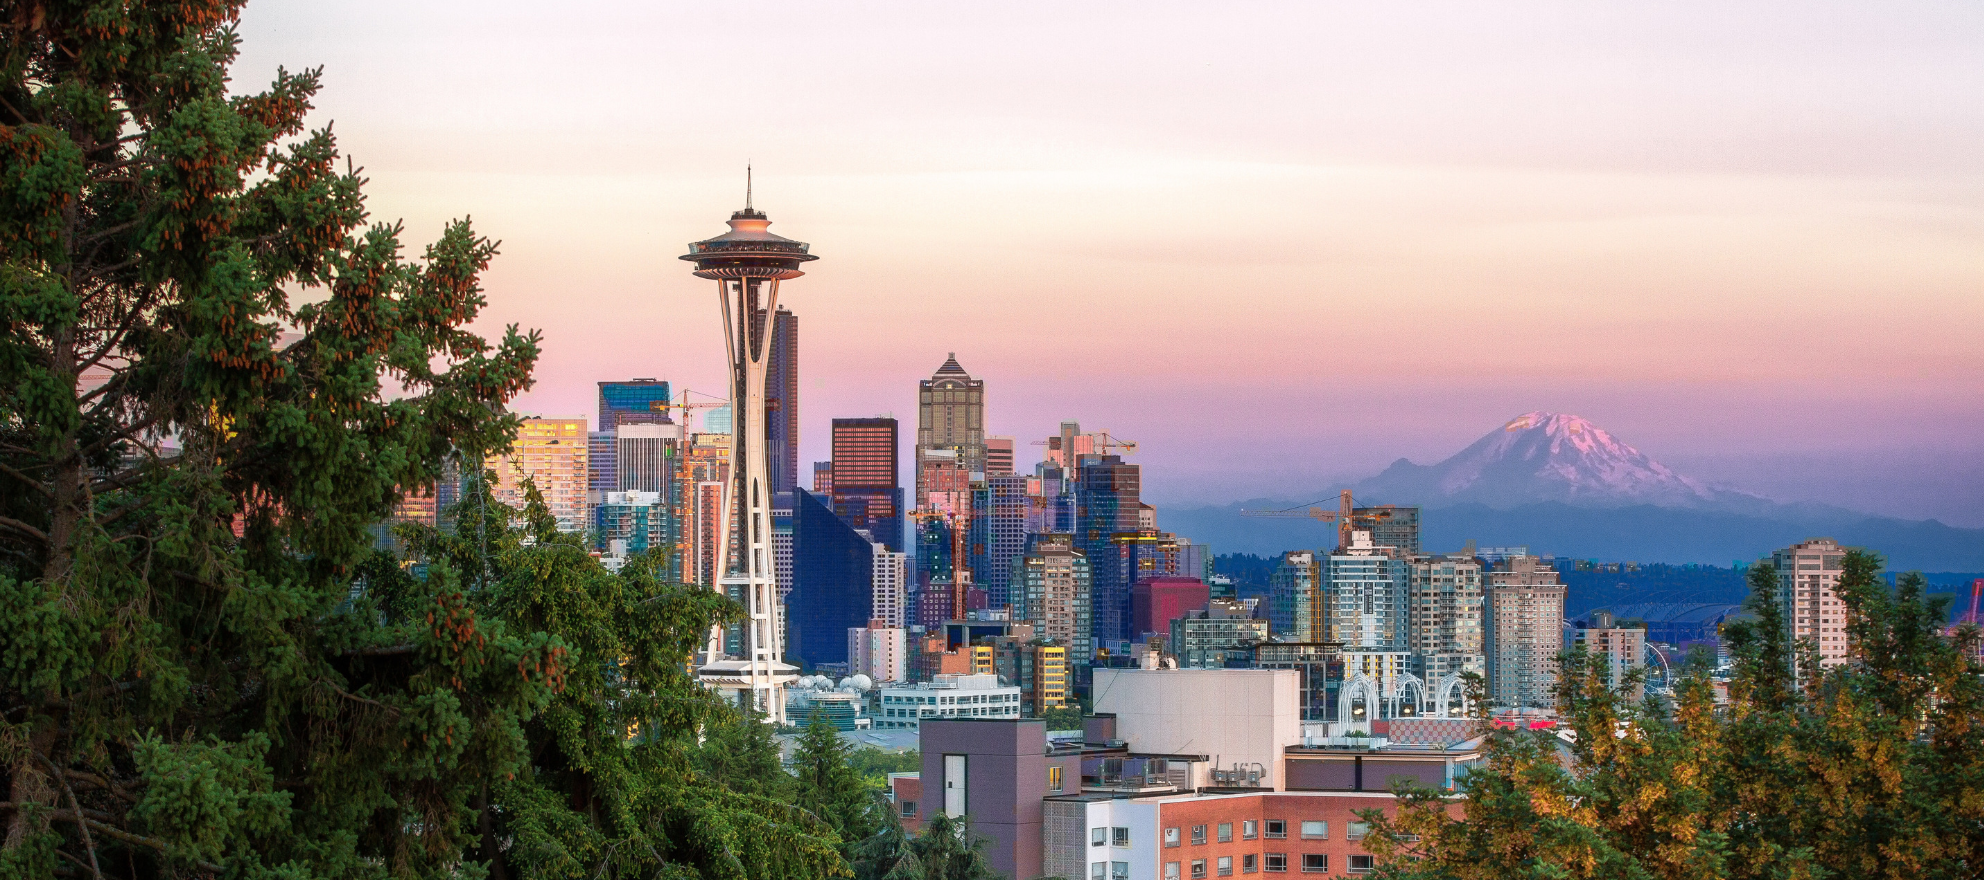 Microsoft is putting up $500M to help affordability crisis in Seattle